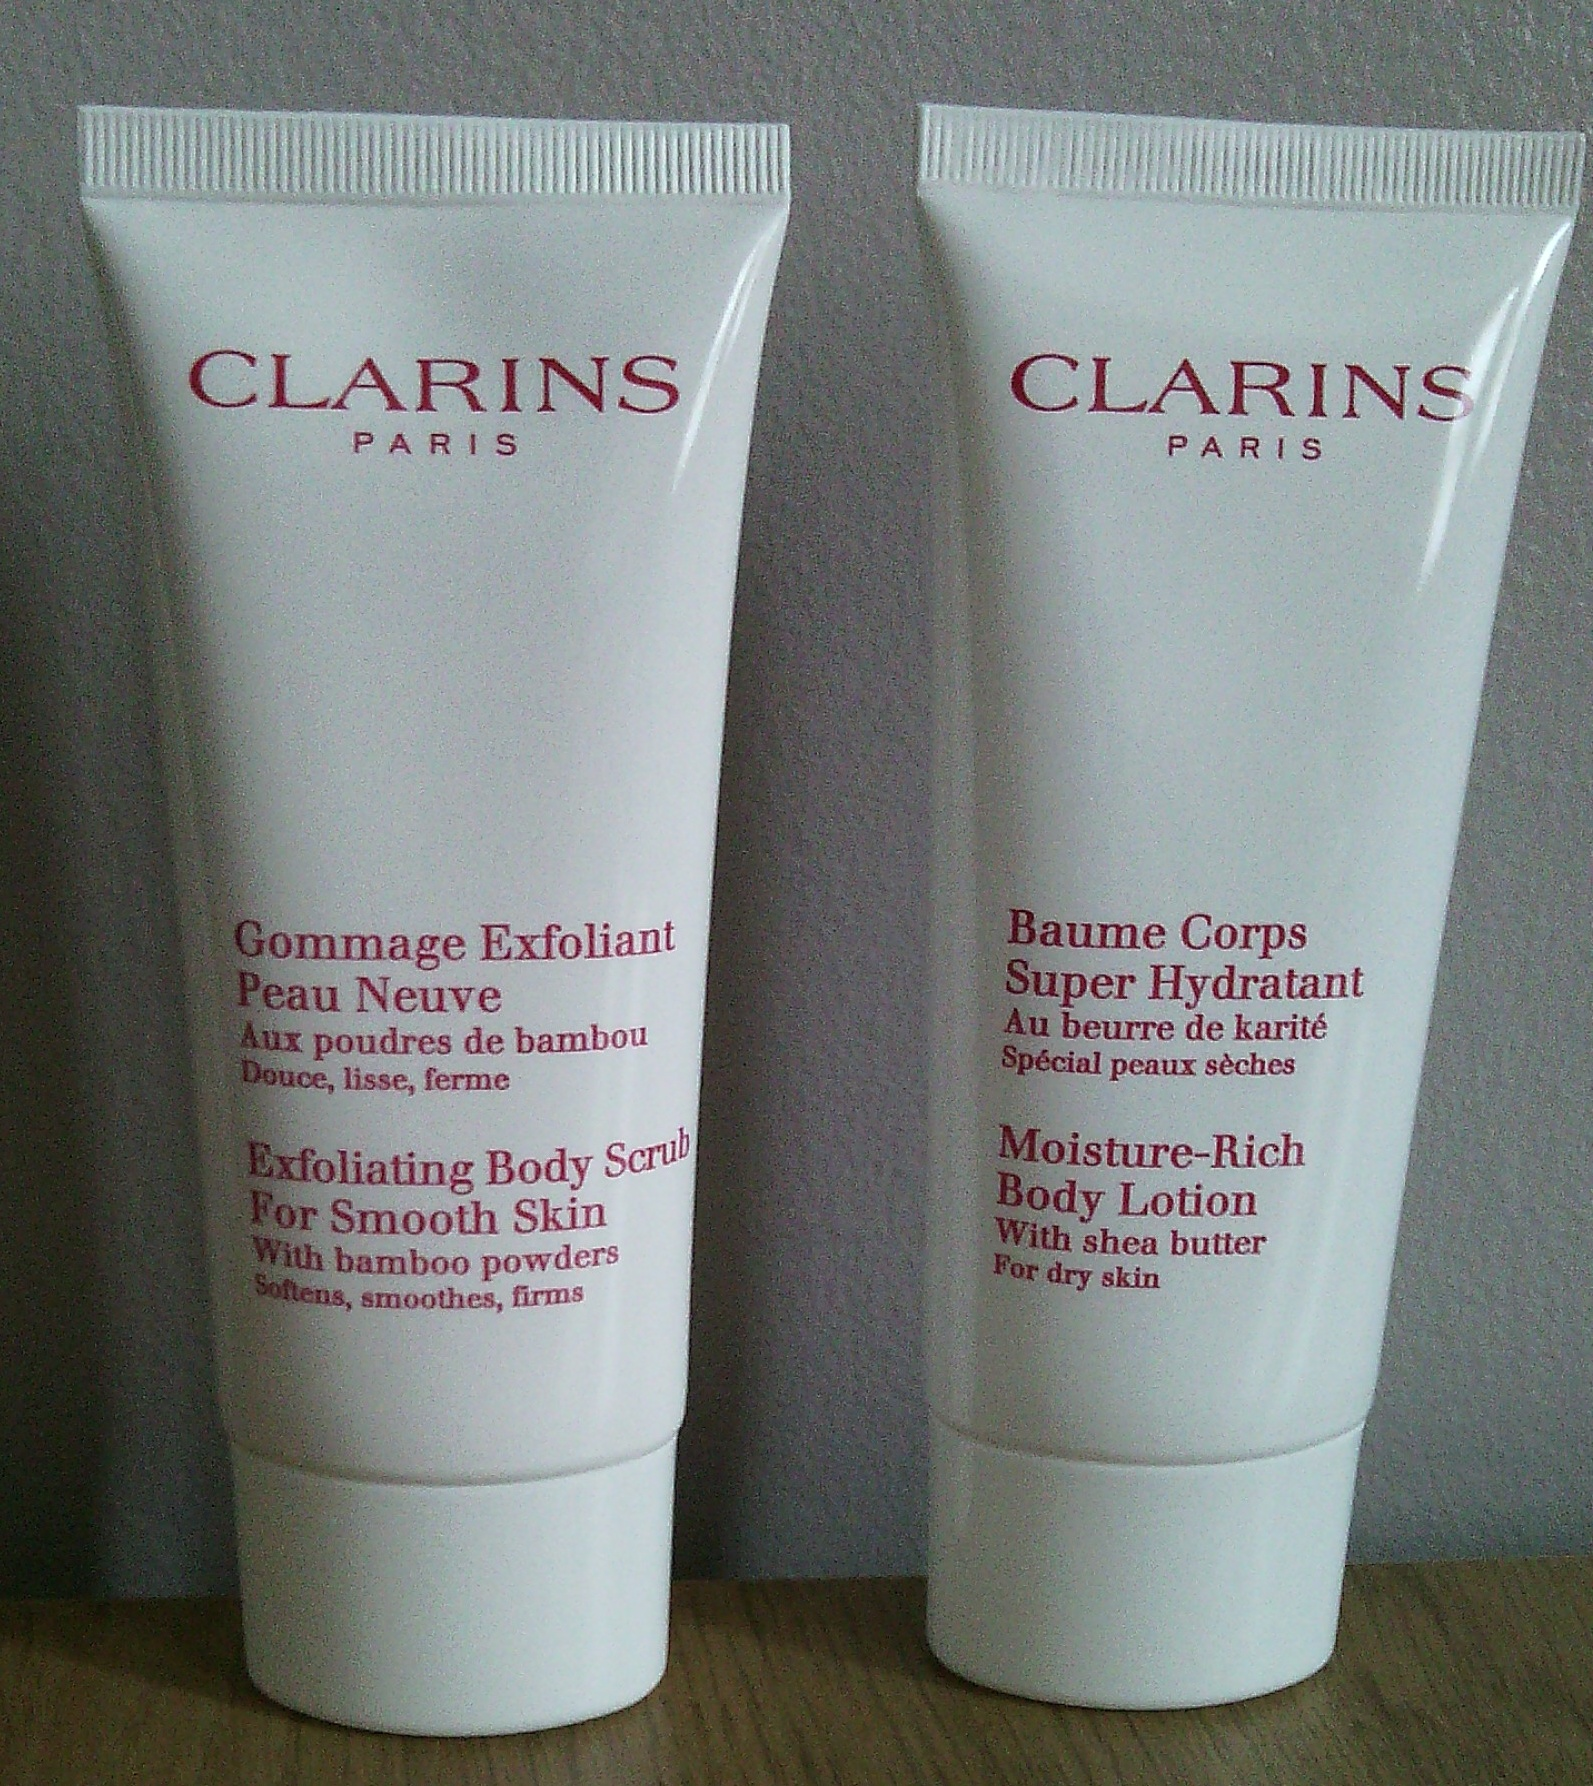 Exfoliating Body Scrub For Smooth Skin by Clarins #8